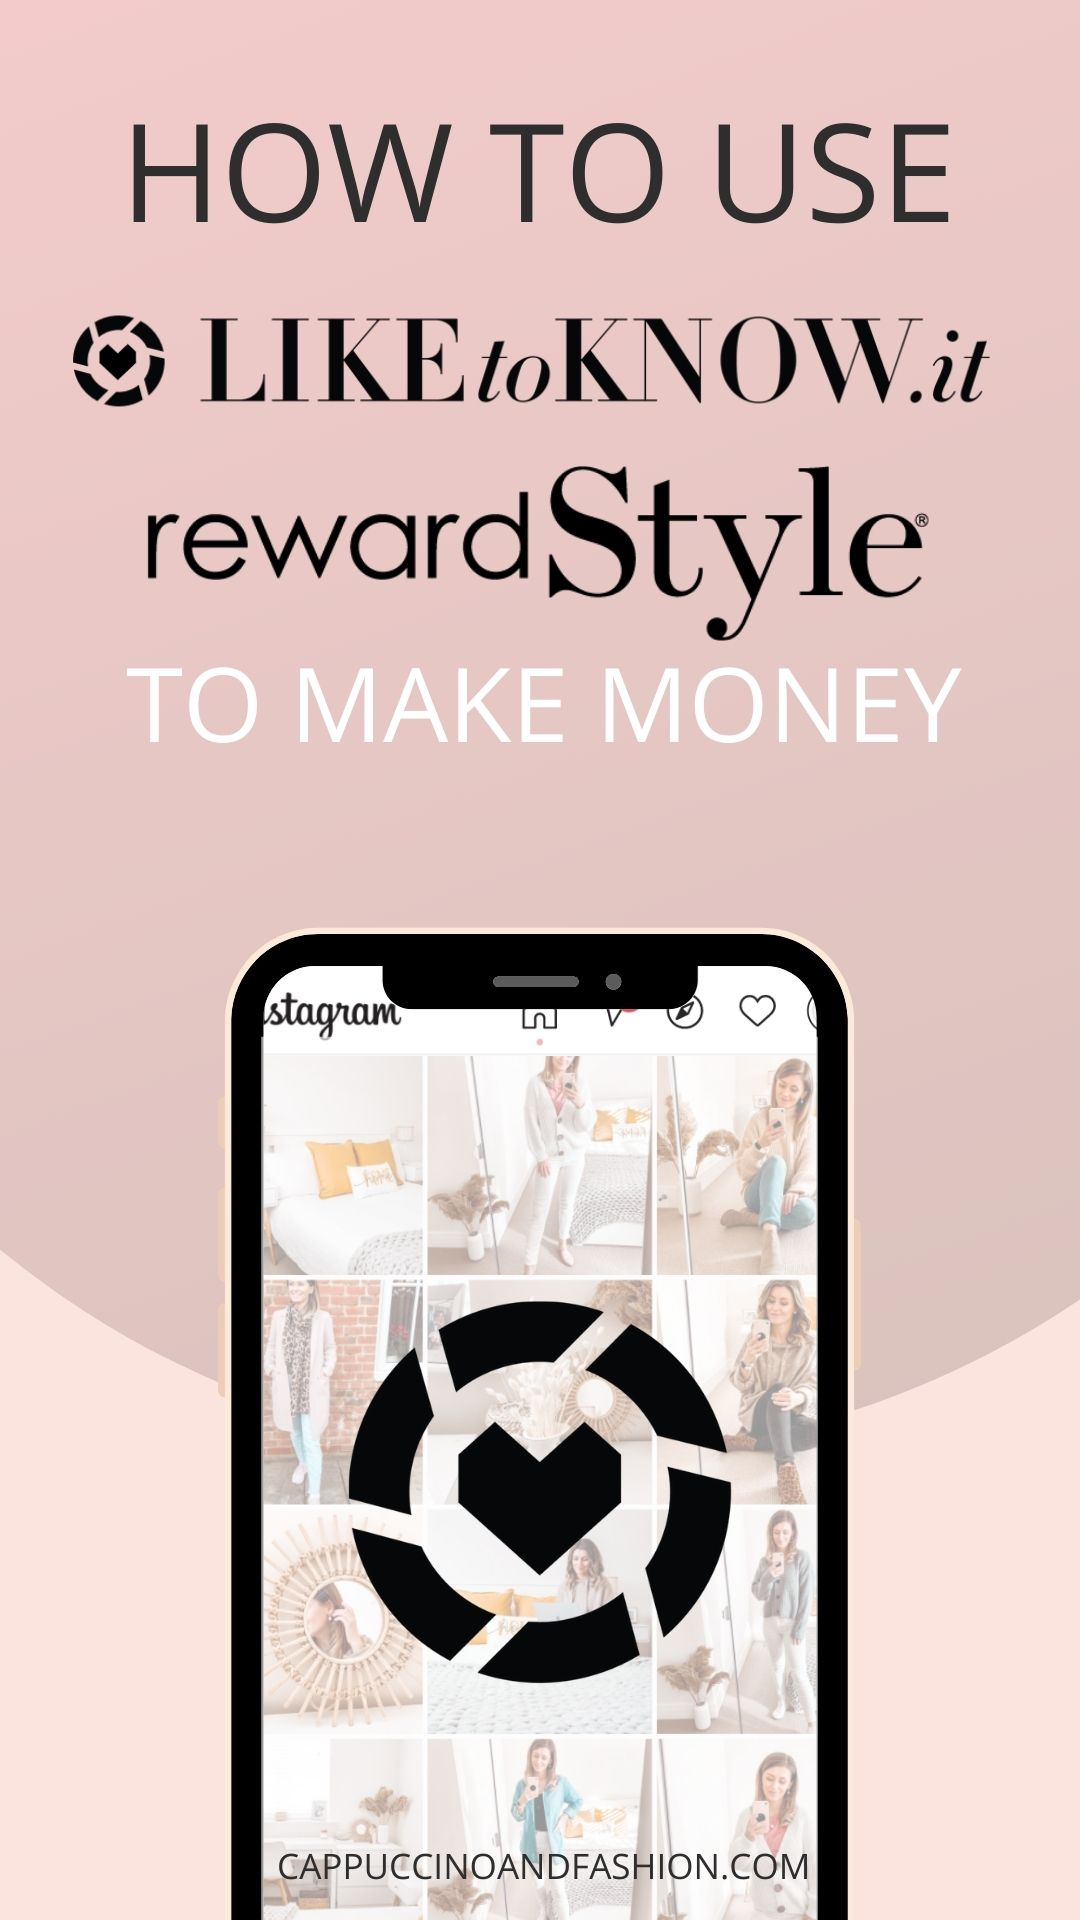 How to Use RewardStyle and LiketoKnow.it as an Influencer